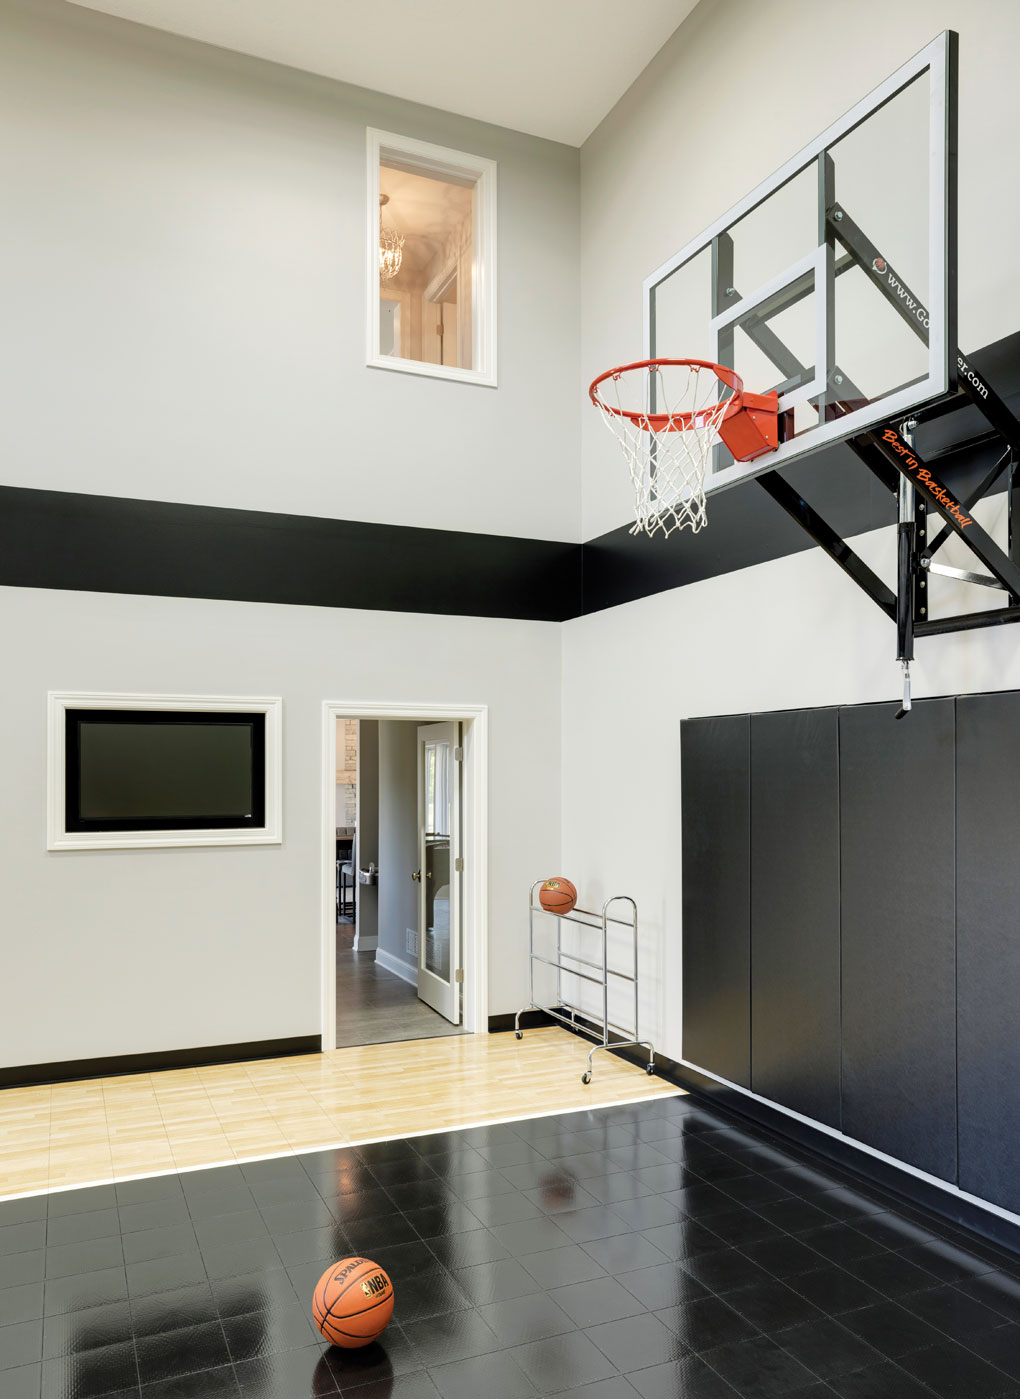 An indoor sport court shows a basketball hoop with basketballs ready to be played with.